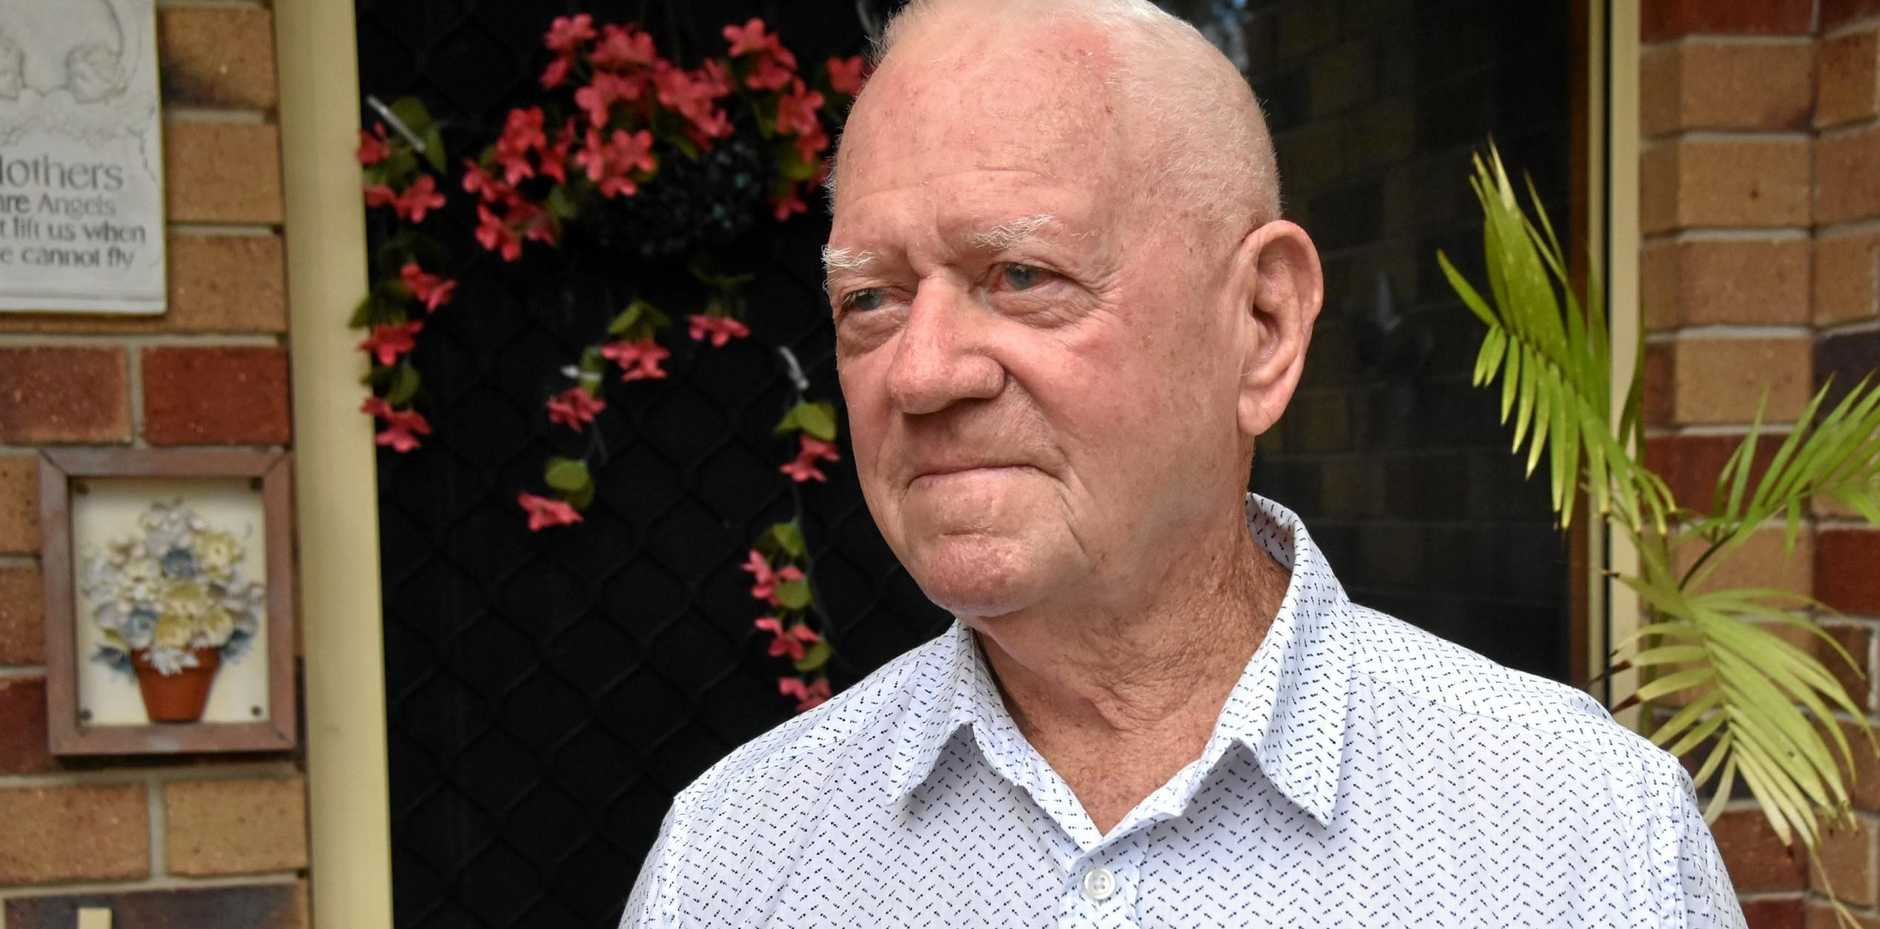 Roy Aiton, who served on the Australia Royal Airforce, will deliver an Anzac Day speech in Gladstone.